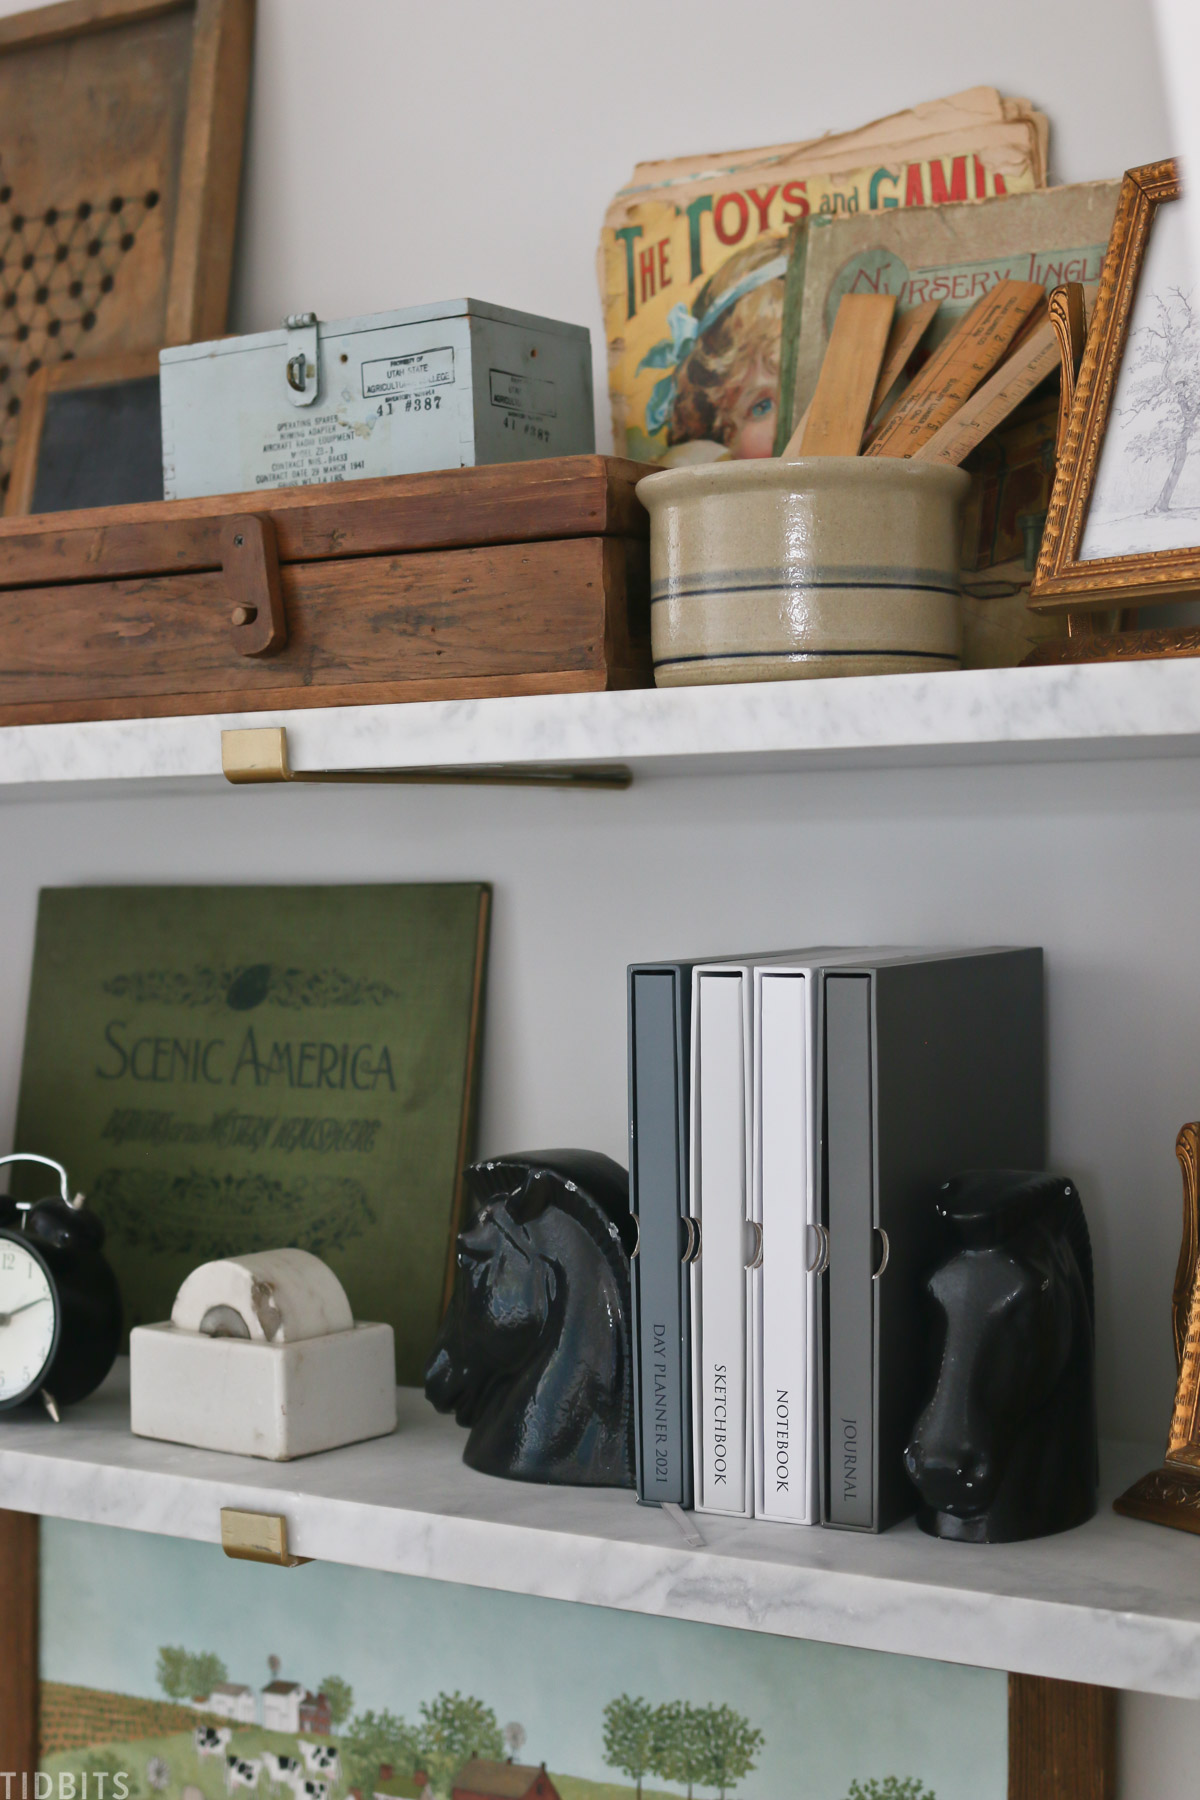 planner, sketchbook, notebook, and journal placed on a bookshelf with decor items